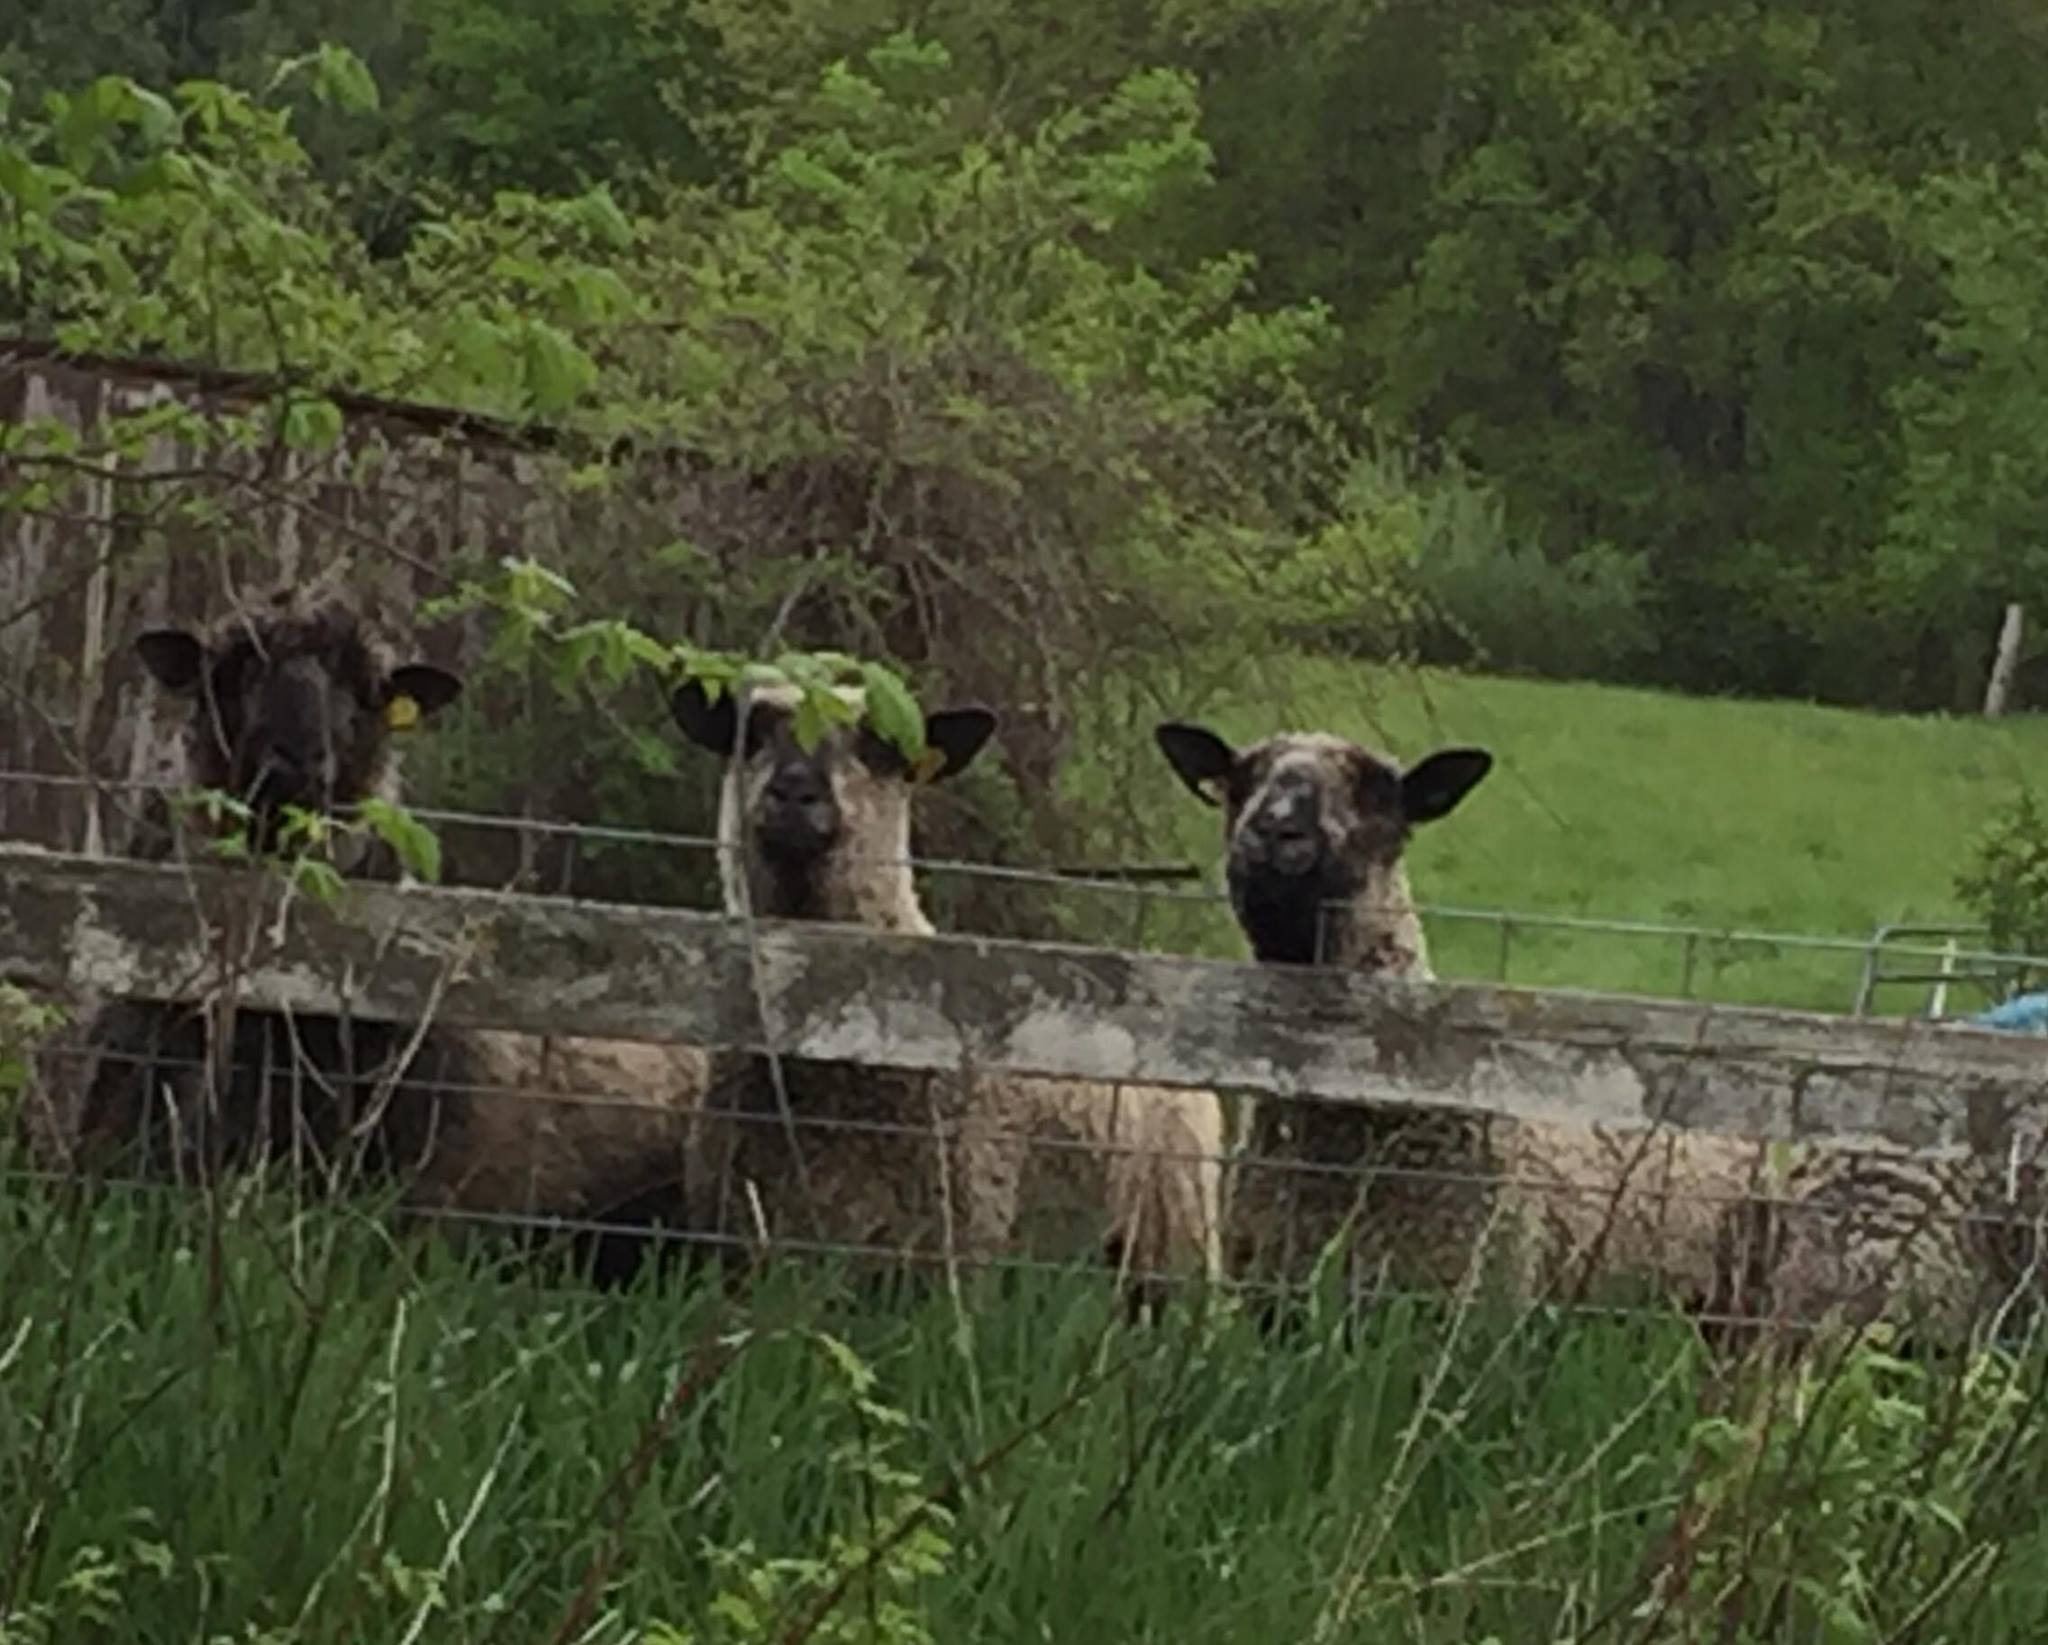 Golfers Arms Tavern's featured farm: Wind Valley Farm. The sheep alopng the fenceline.